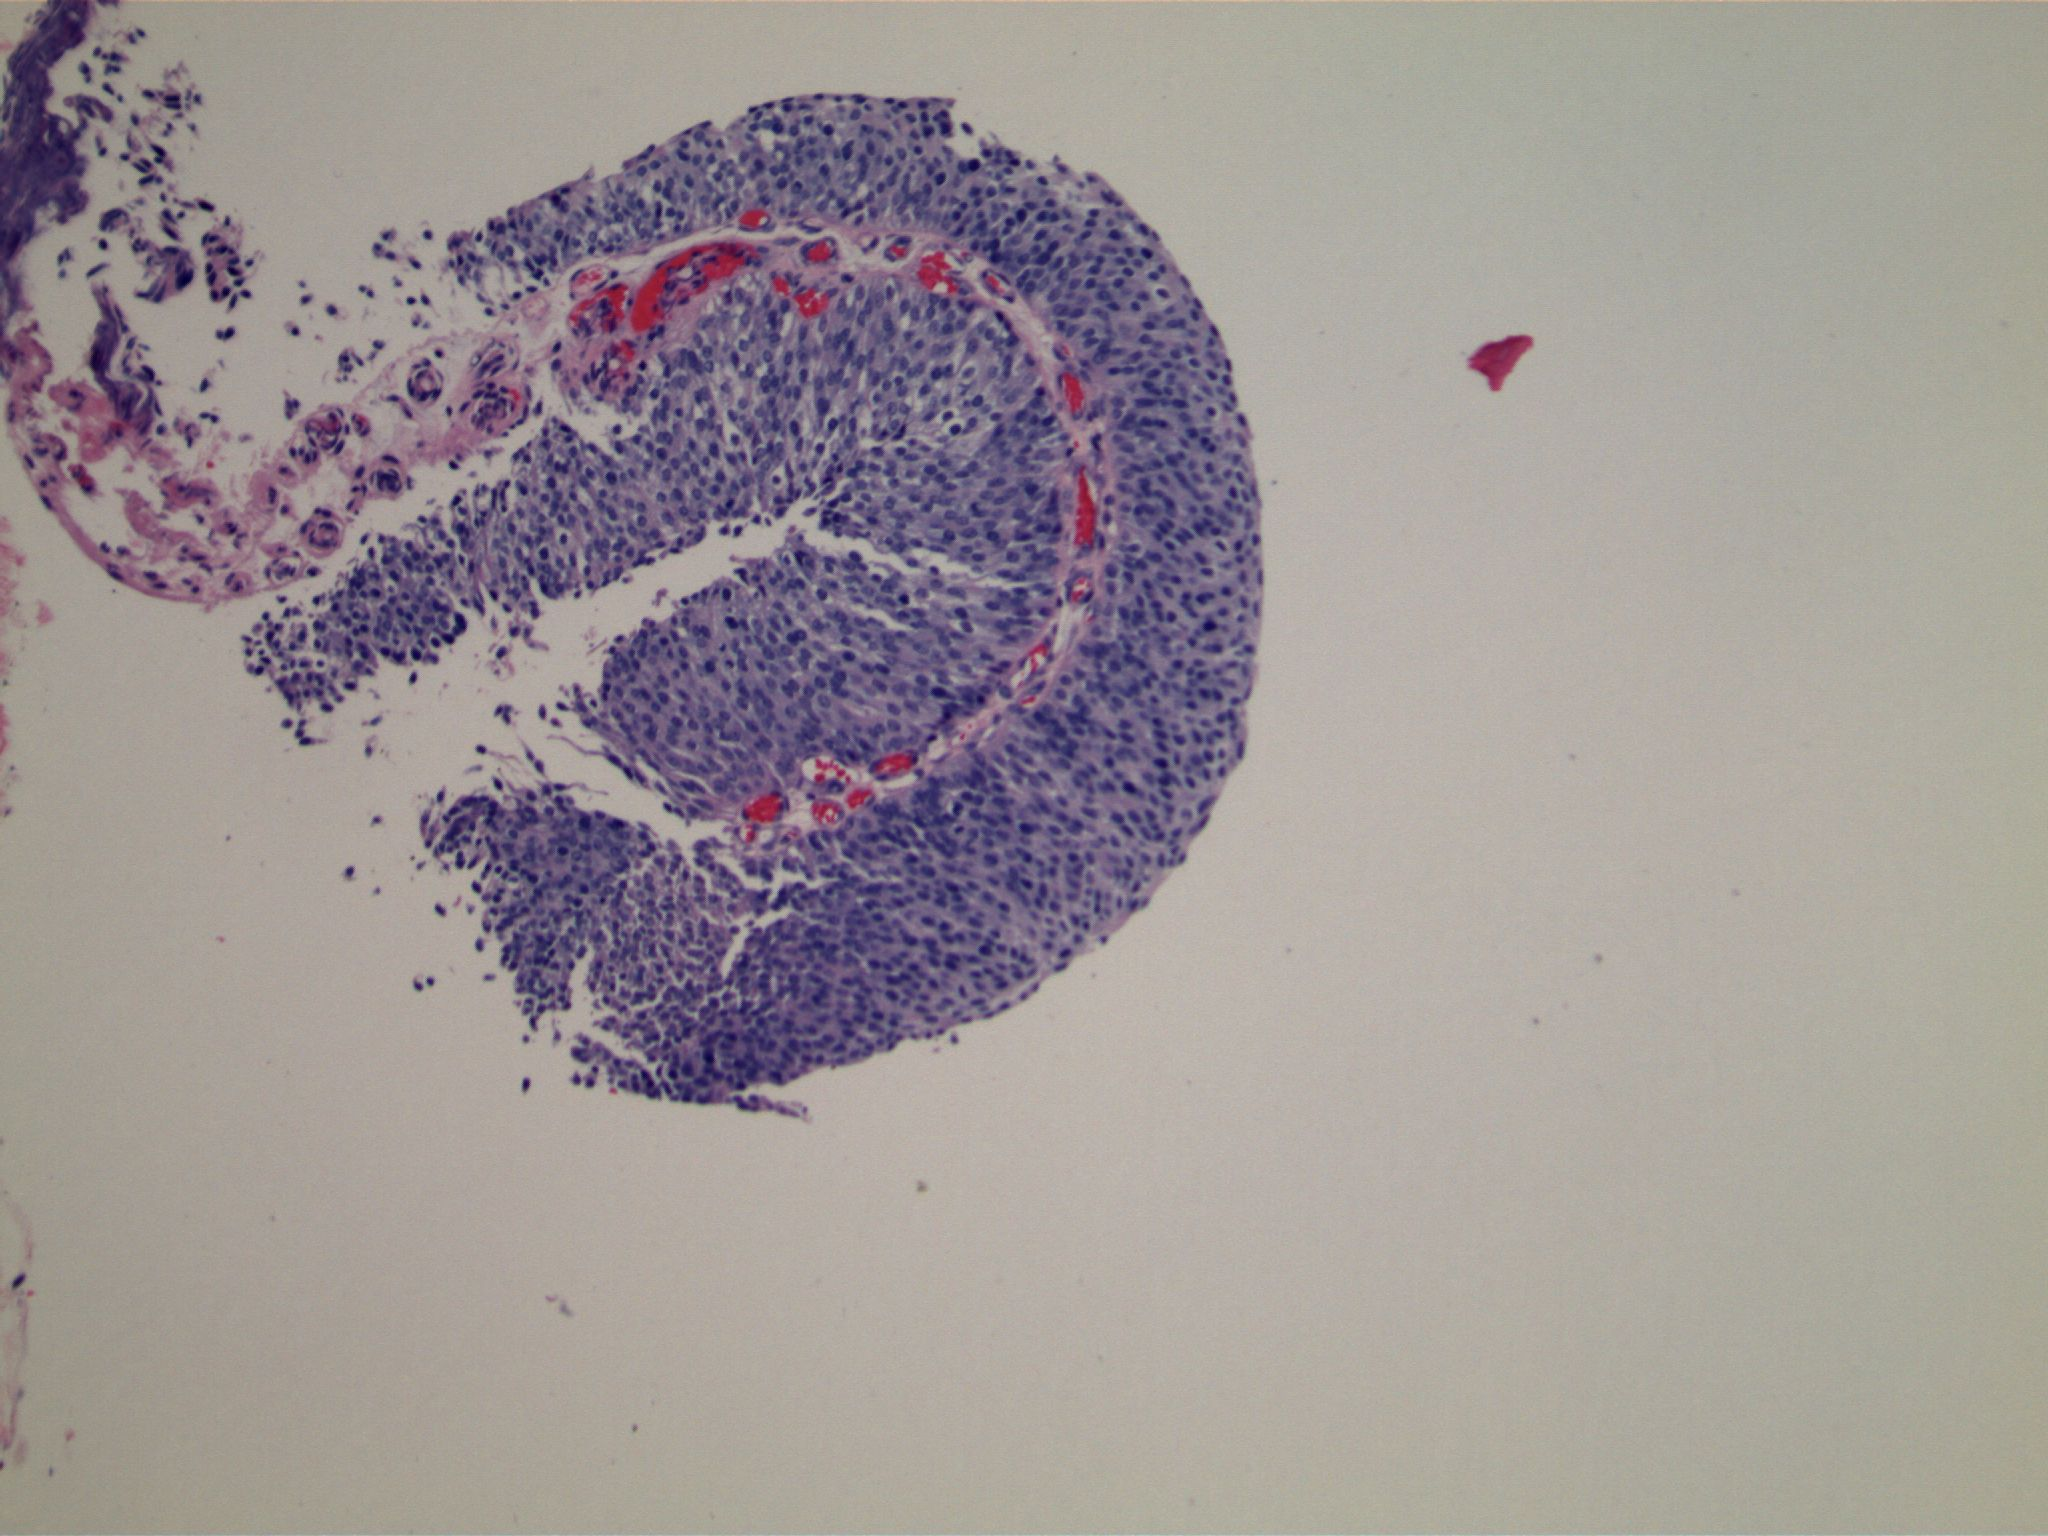 Image 2.  Apparent fibrovascular cores are beneath a proliferation of uniform cells.